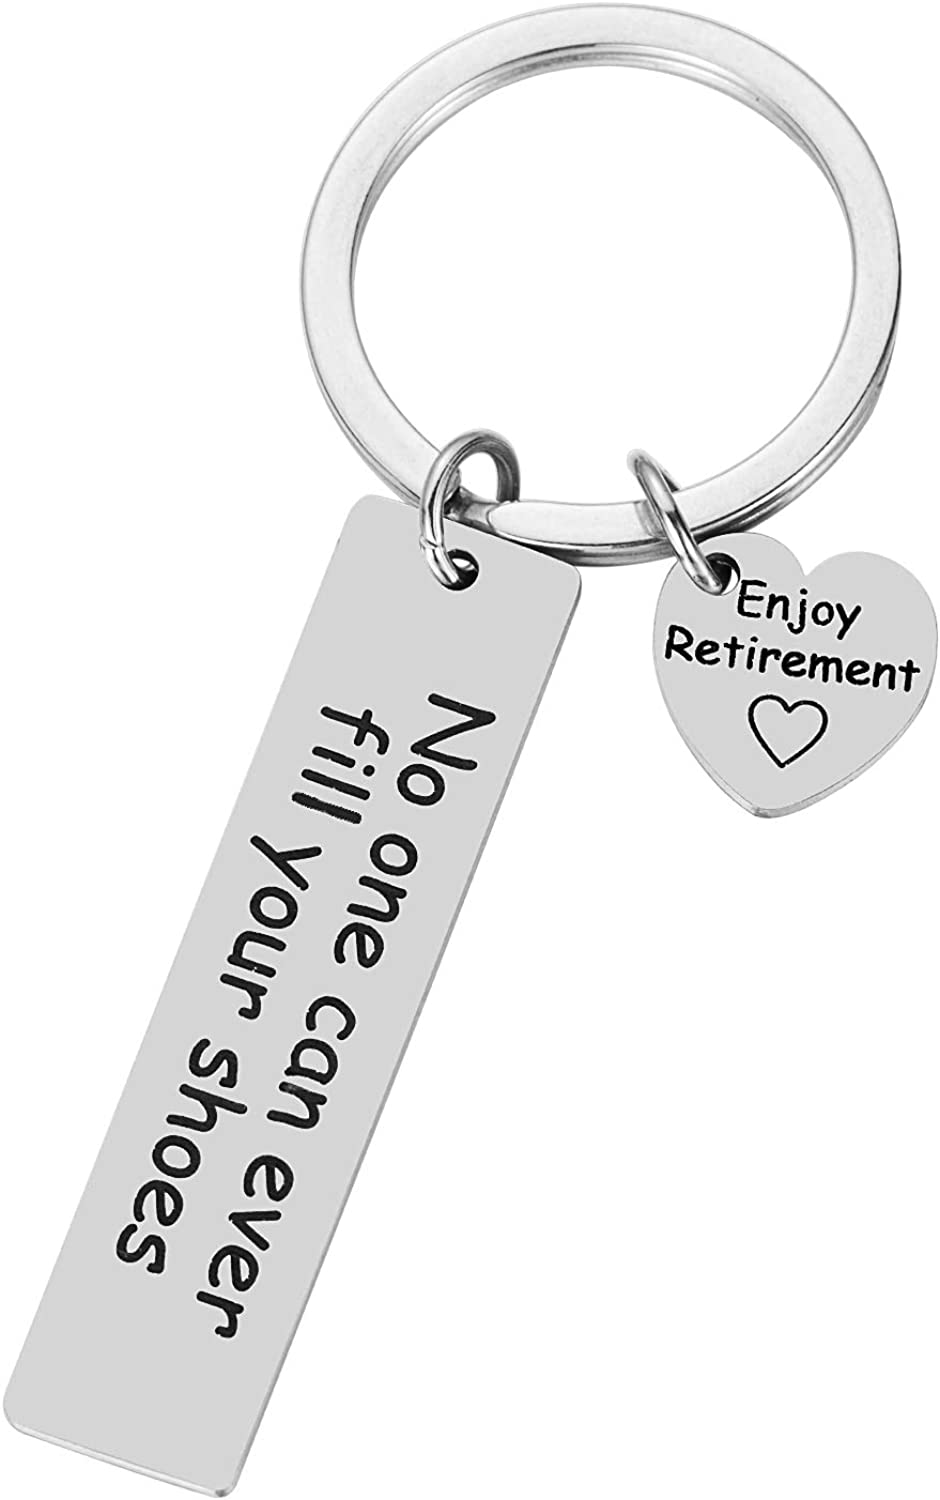 Gifts for Colleagues Friends Keychain Graduation Gift Friendship Gift Boss Classmate Gift